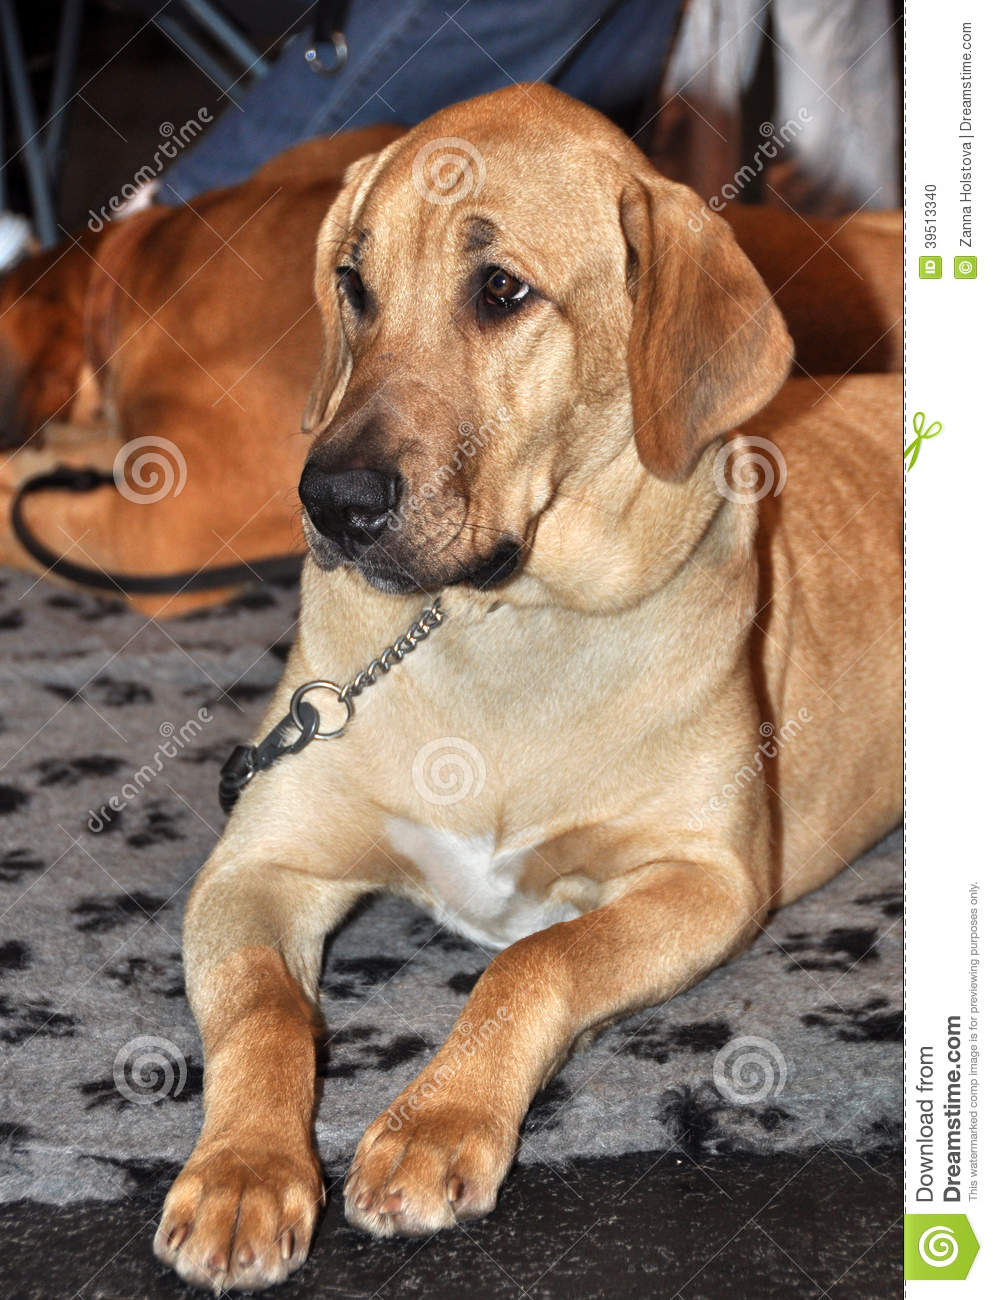 Broholmer, Danish Mastiff Dog Stock Photo - Image: 39513340